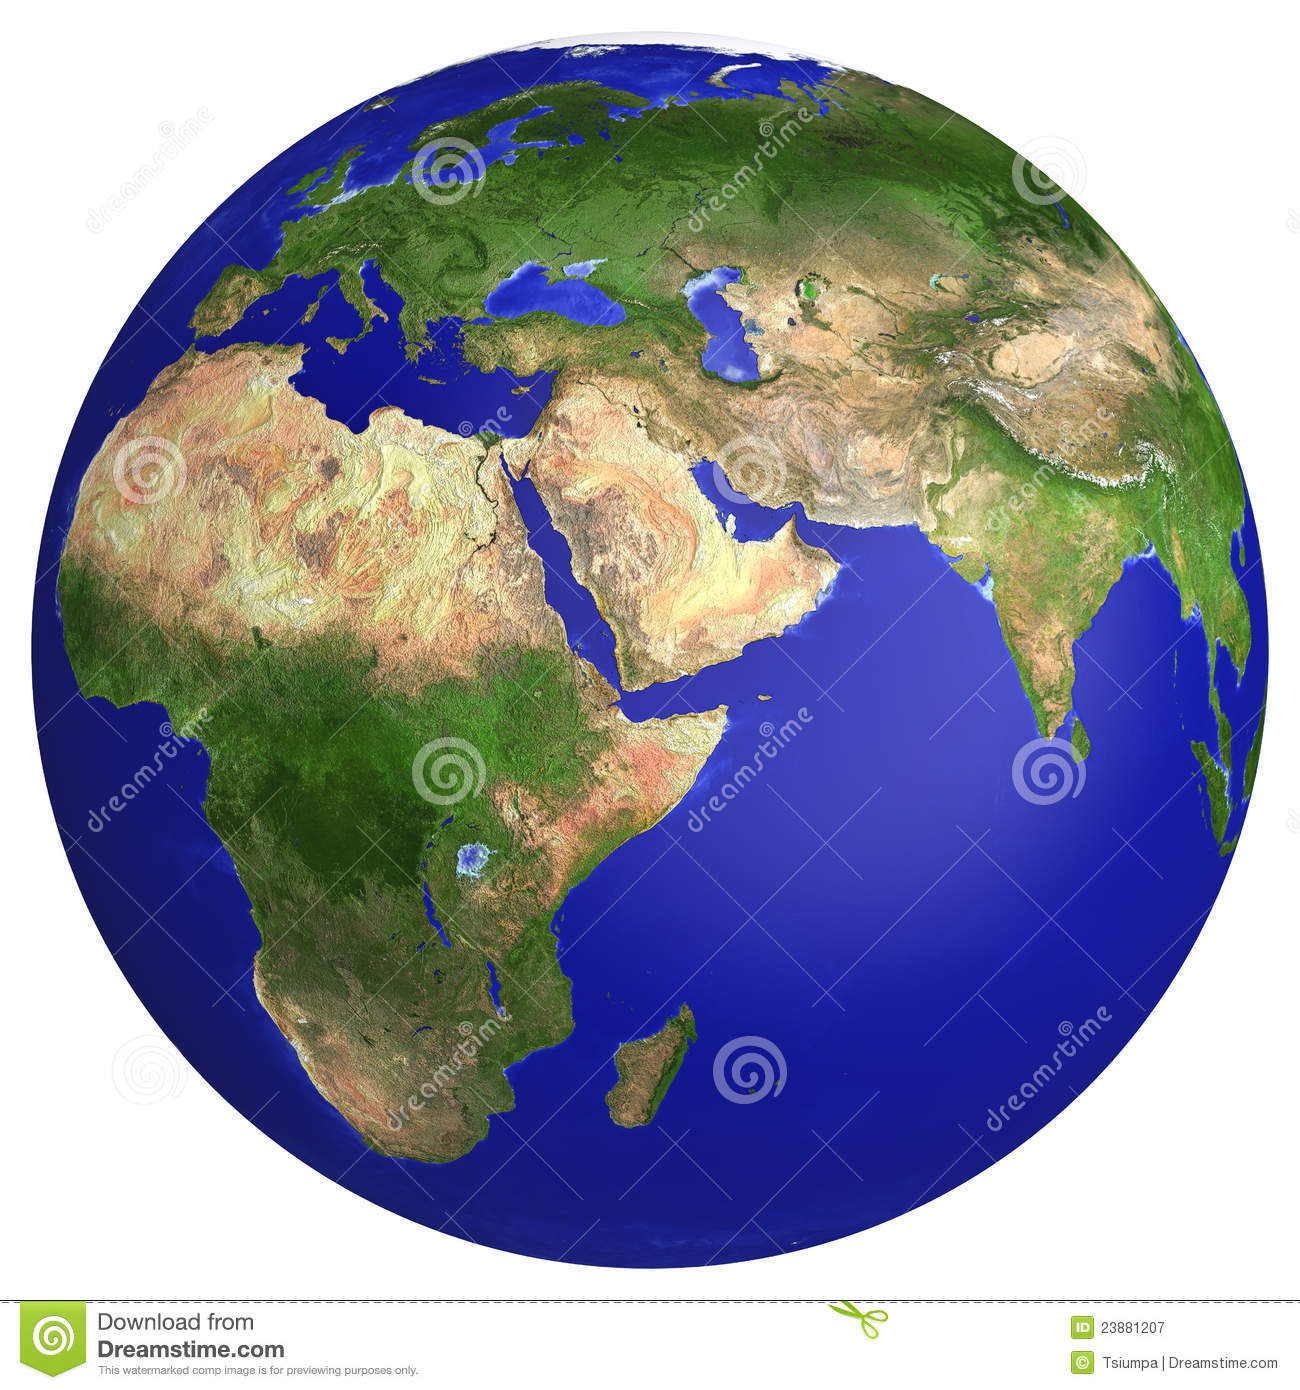 Earth planet globe map stock illustration. Illustration of ...